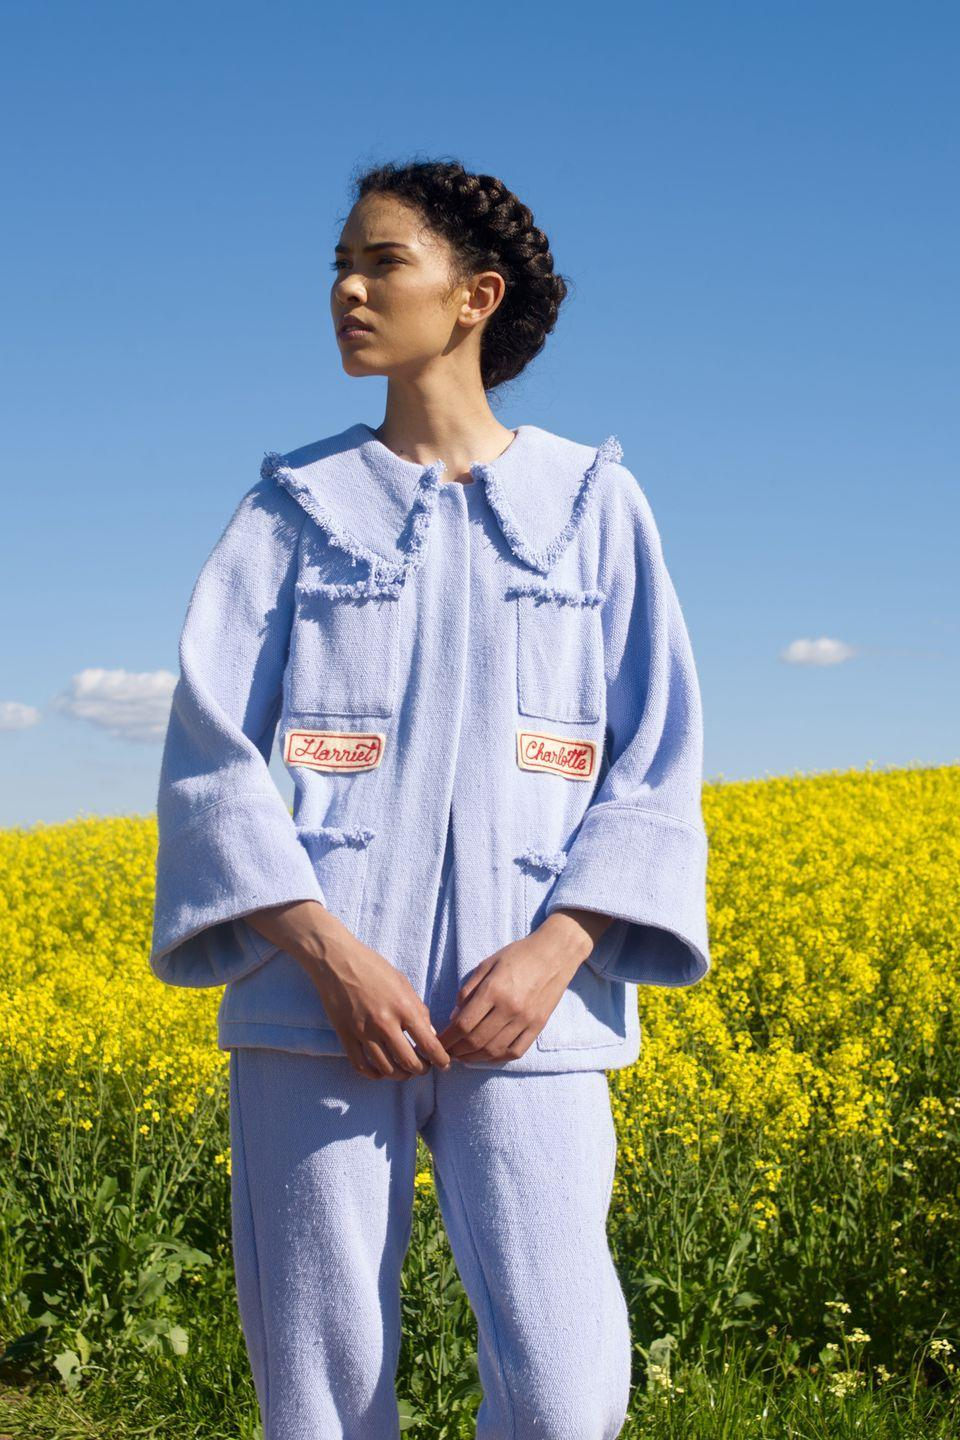 """<p>South African designer Sindiso Khumalo, who was one of the 8 LVMH Prize finalists to split this year's prize, made her Milan Fashion Week debut (digitally, of course, due to ongoing travel restrictions). Harriet Tubman—whose name appeared on embroidered patches affixed to a beautifully tailored jacket with raw edges and a patch pocket cardigan—served as the collection's muse, """"Violence against Black woman has been in existence since Harriet Tubman's time and still exists today with Uyinene Mrwetyana in South Africa, Breonna Taylor in America and the young school girls from Nigeria who were stolen by Boko Haram,"""" says Khumalo of her powerful inspiration. """"There is still a lot more work to be done."""" Khumalo is committed to uplifting other Black women through her collaborations with female artisan collectives across Africa. Hand printed silk taffeta and handwoven cottons used in Harriet-like prairie dresses came from Burkina Faso, while the collection's embroidery details were done by members of a Cape Town employment program for former sex workers. <em>—Alison S. Cohn</em></p>"""